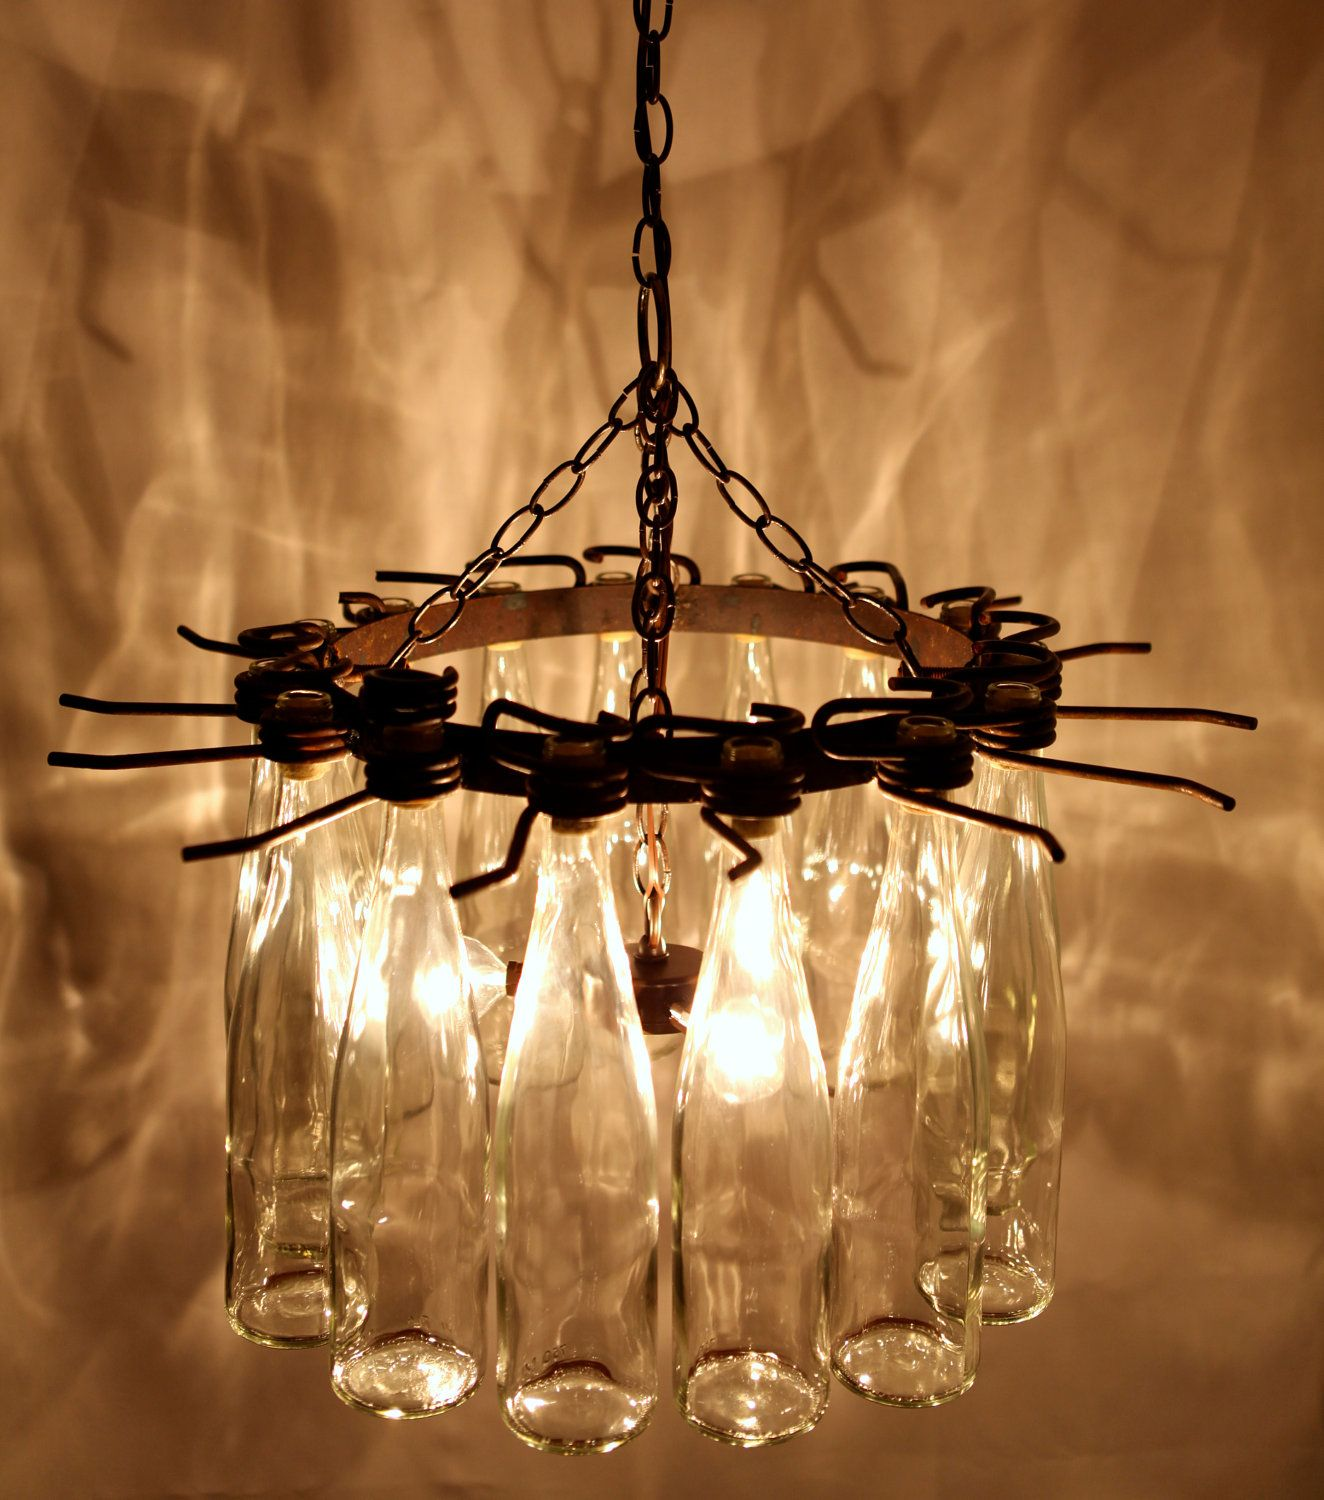 Kronleuchter Flaschen 15 Wine Bottle Chandelier Wein And Co Wein Flaschen